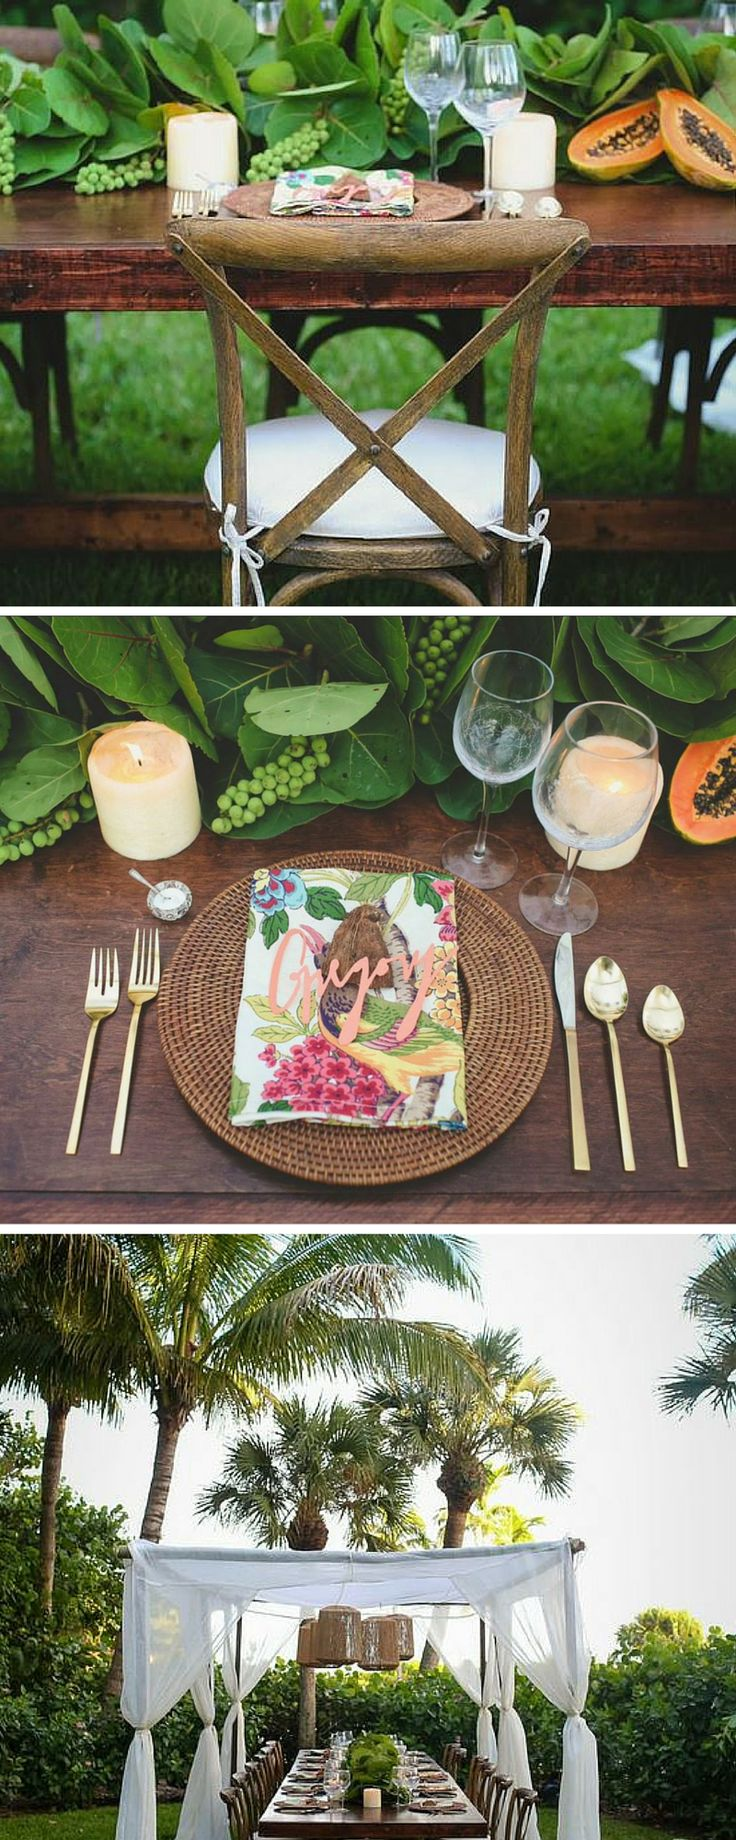 Garden Wedding - Tahitian Decor | Sundial Beach Resort & Spa | Sanibel Island | Florida Beach Wedding